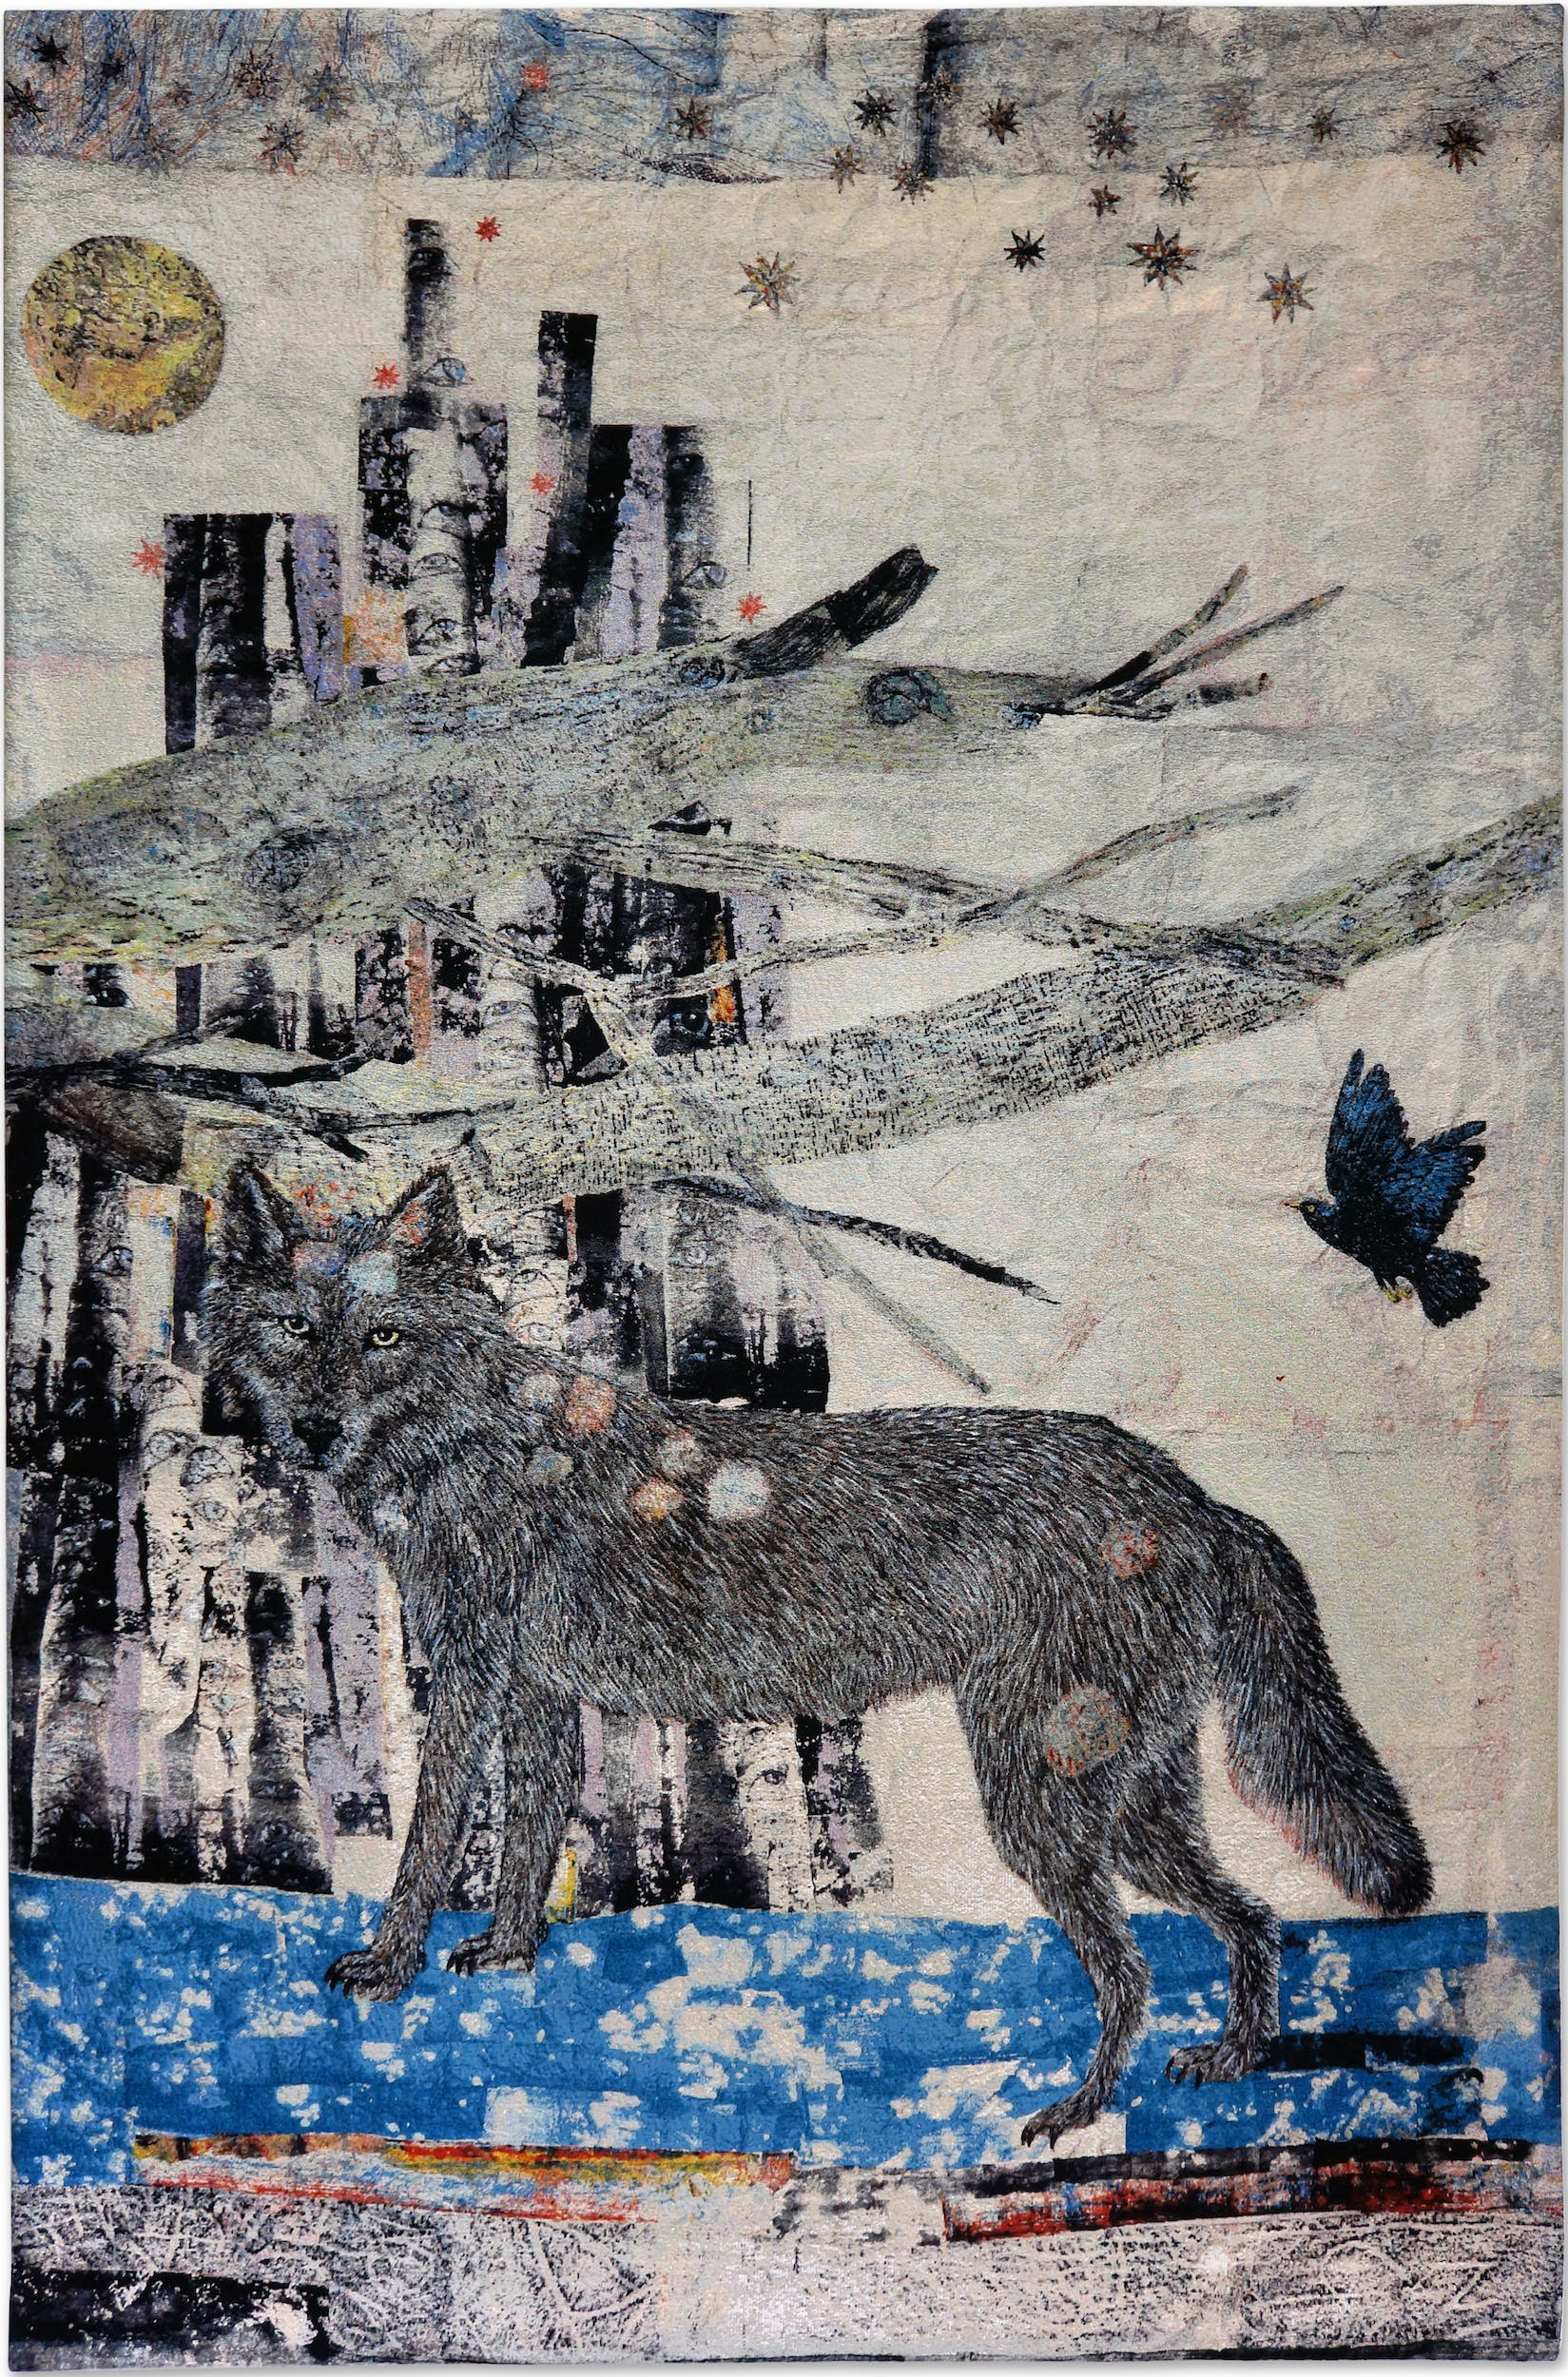 Cathedral (Wolf) 2012, arazzo in cotone jacquard Roma, collezione Giulio di Gropello Per gentile concessione di Galleria Continua, San Gimignano - Beijing – Les Moulins – Habana I Cathedral (Wolf) 2012, cotton Jacquard tapestry Roma, Giulio di Gropello collection Courtesy of Galleria Continua, San Gimignano - Beijing – Les Moulins – Habana